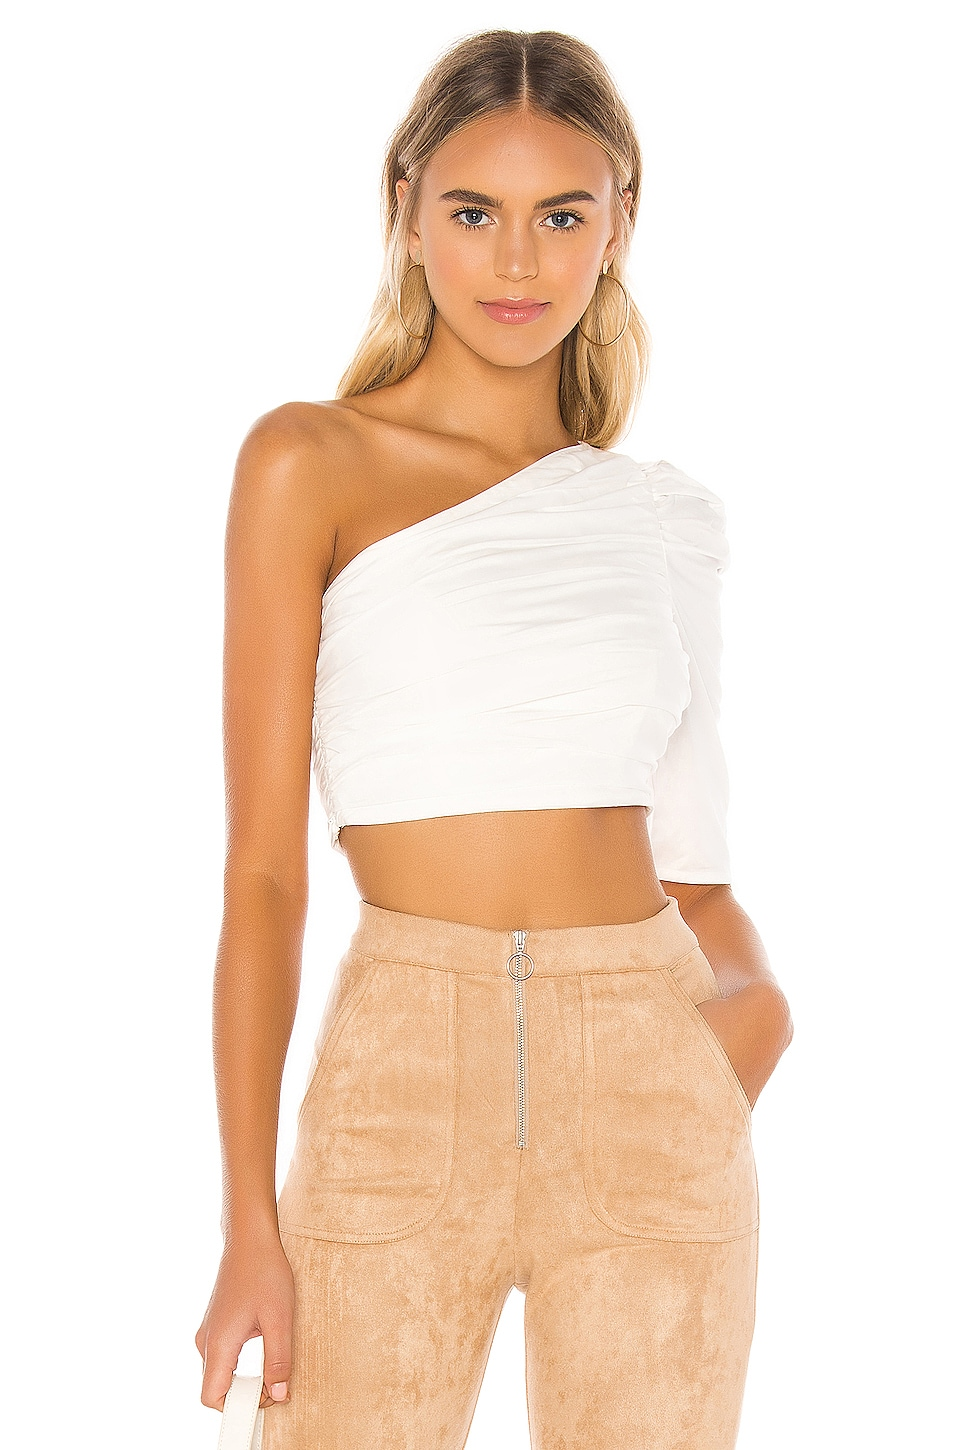 MAJORELLE Donatella Top in White